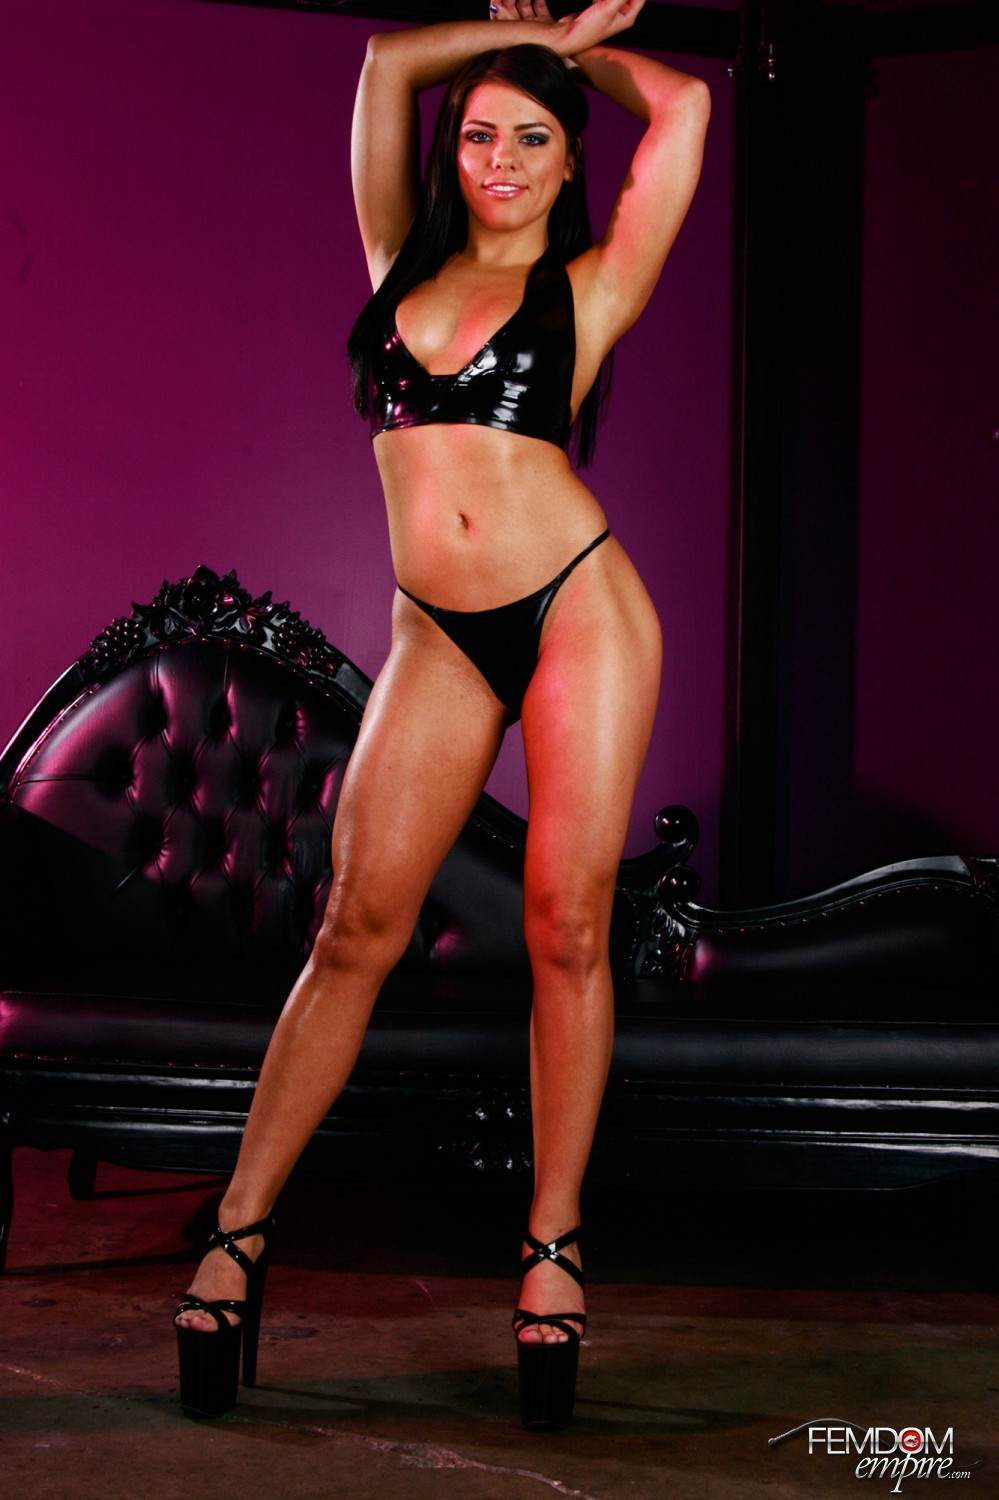 Picture #5 of Black rubber lingerie and massive strapon cock are turning this babe into one of the hottest dommes ever